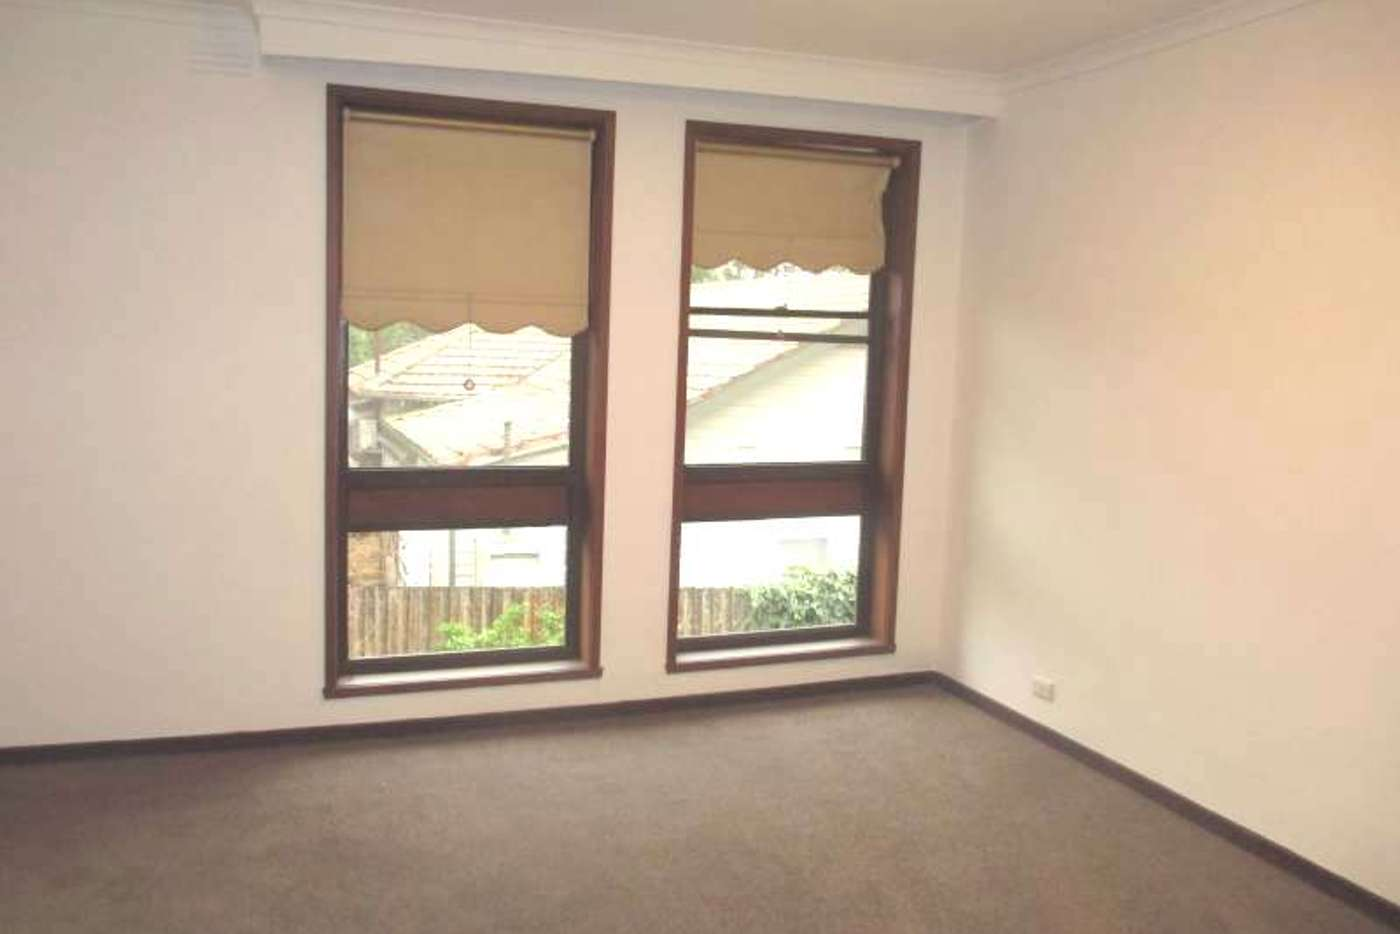 Seventh view of Homely townhouse listing, 3/98 Rathmines Street, Fairfield VIC 3078